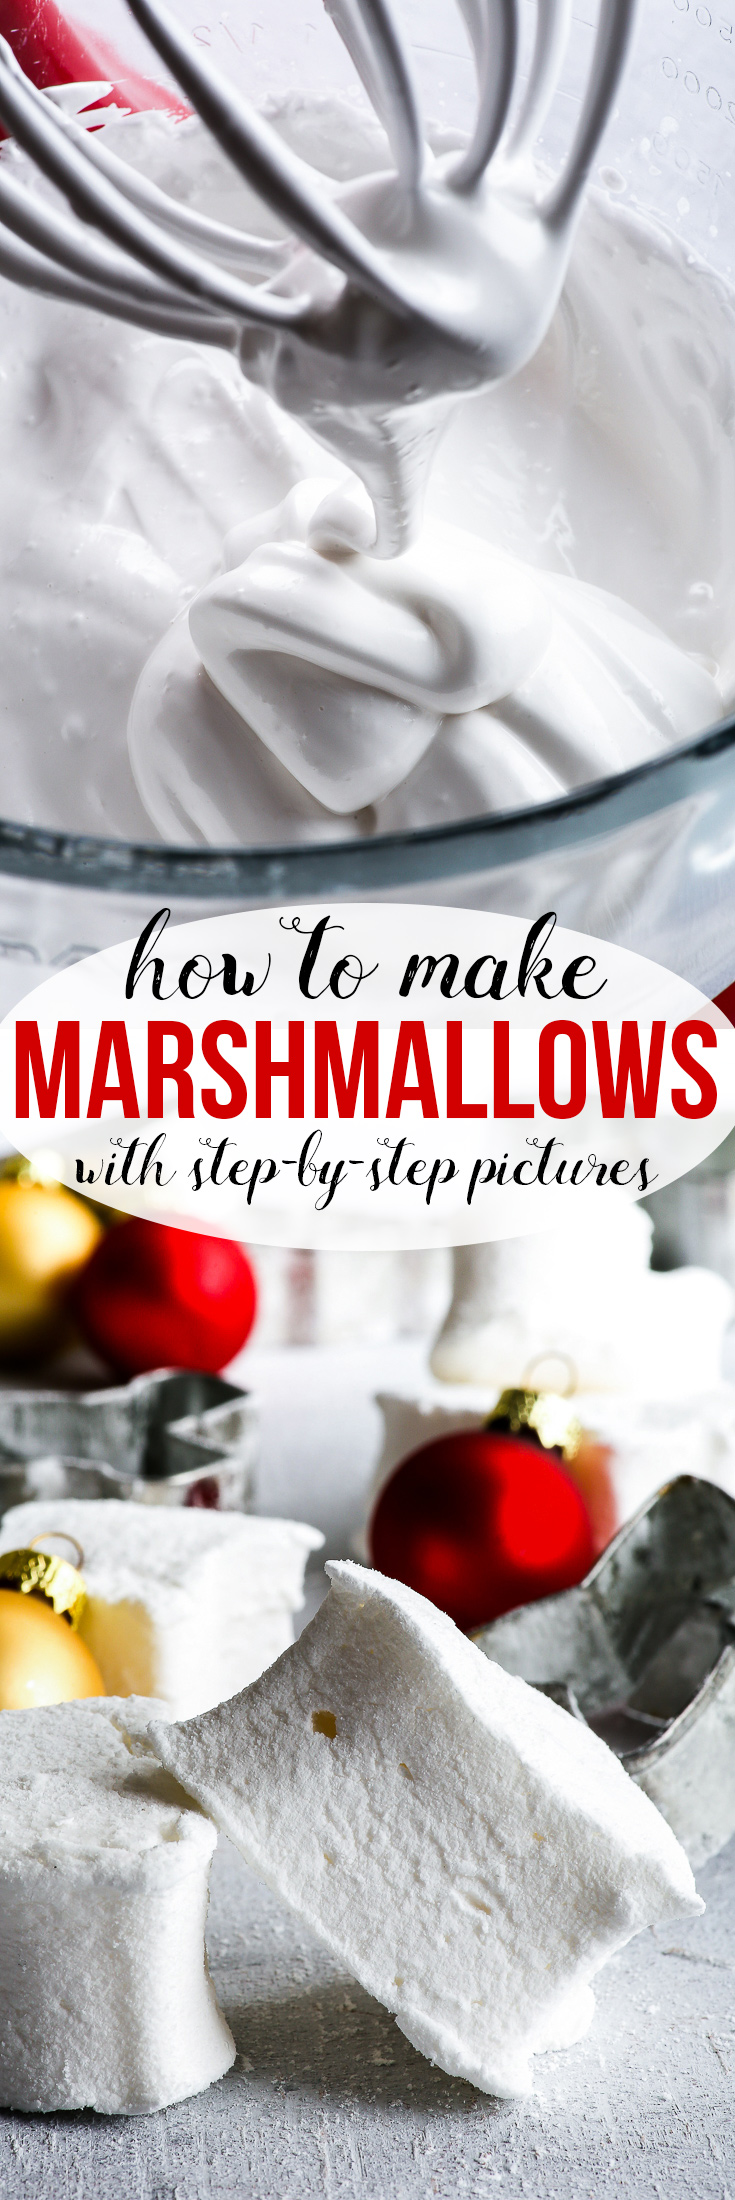 How To Make Marshmallows {gluten, dairy, egg, nut & soy free} - A step-by-step guide on how to make delicious homemade marshmallows – with step-by-step pictures! Super easy basic marshmallow recipe, super fun to make with kids. These homemade marshmallows make the perfect edible DIY Christmas gift! #diygift #christmas #marshmallows #recipe